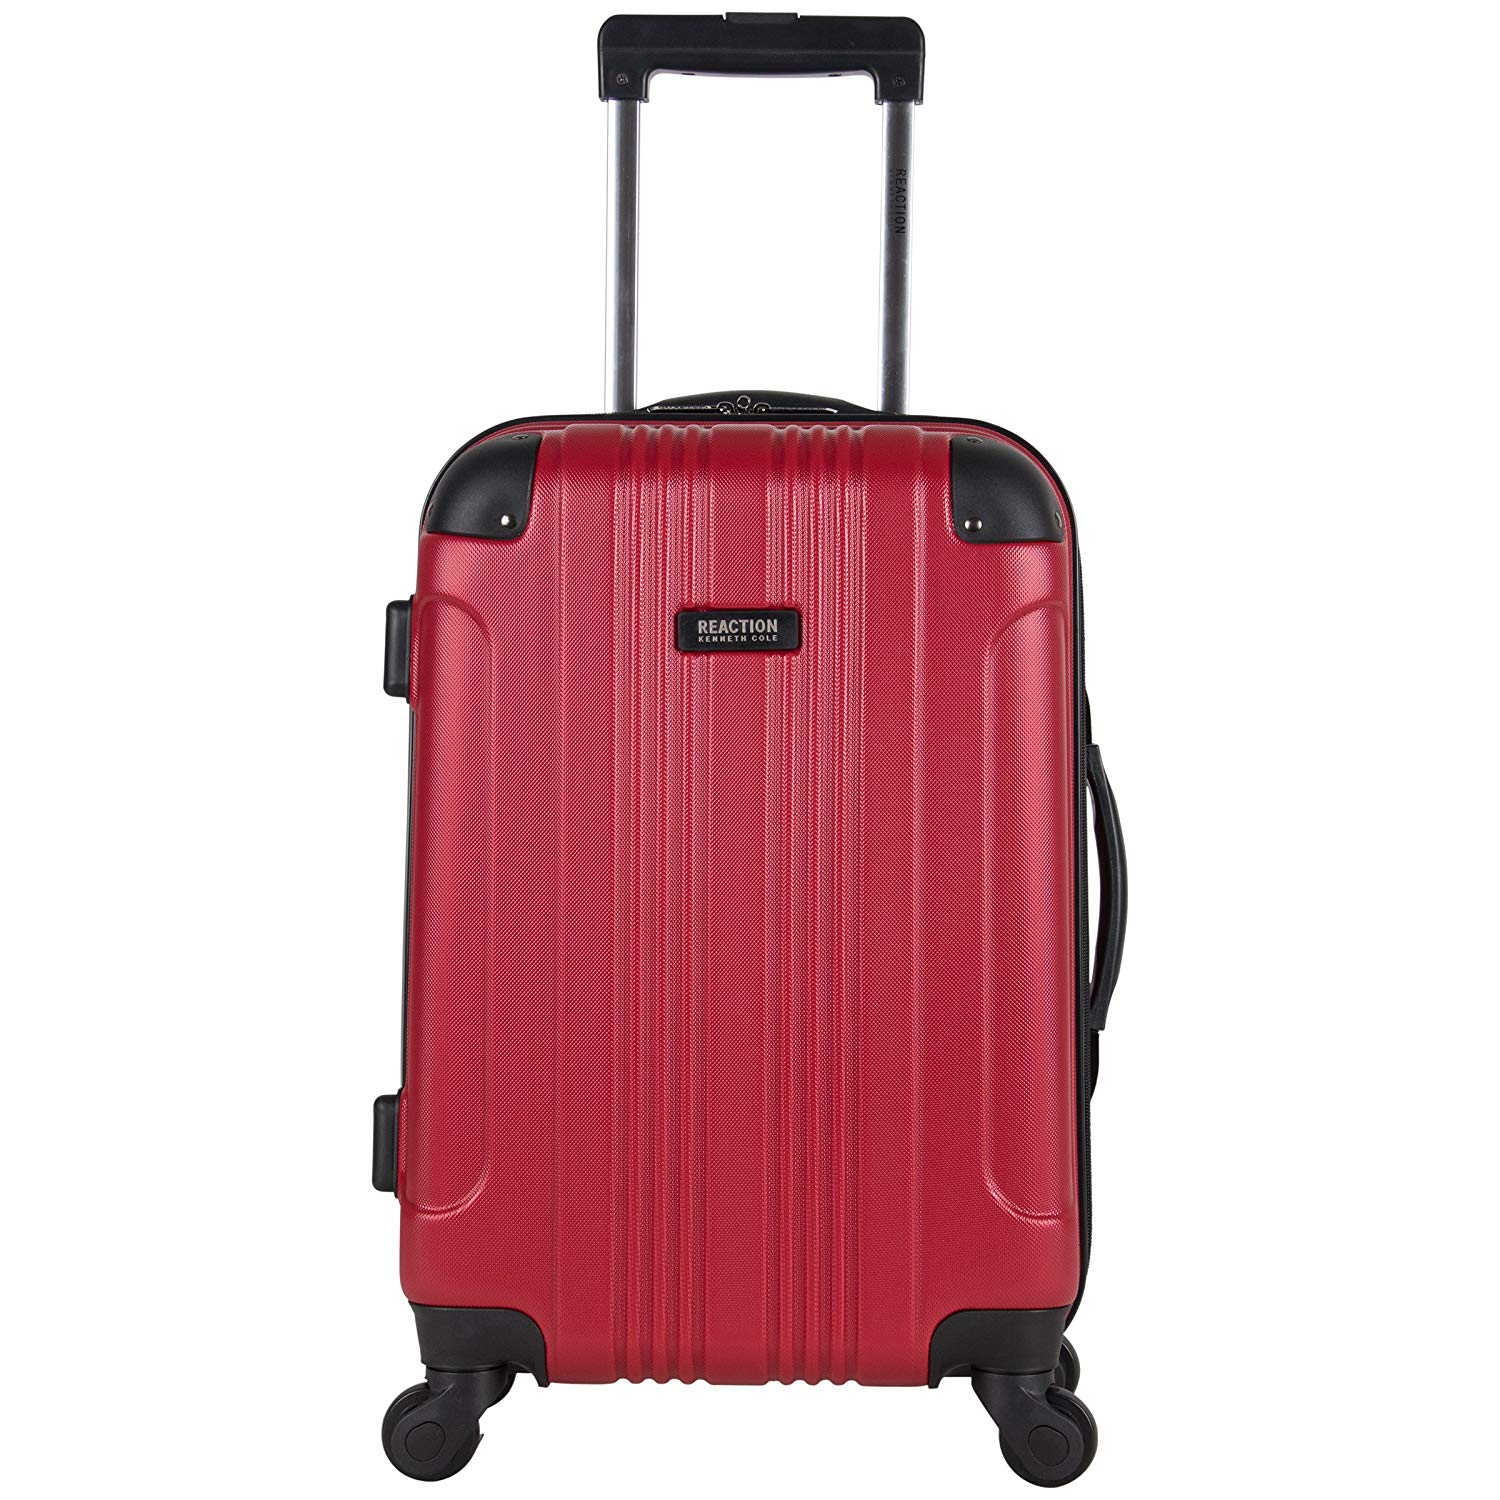 Kenneth Cole Reaction Out of Bounds 20-inch Carry on Lightweight Durable Hardshell 4-Wheel Spinner Cabin Size Luggage